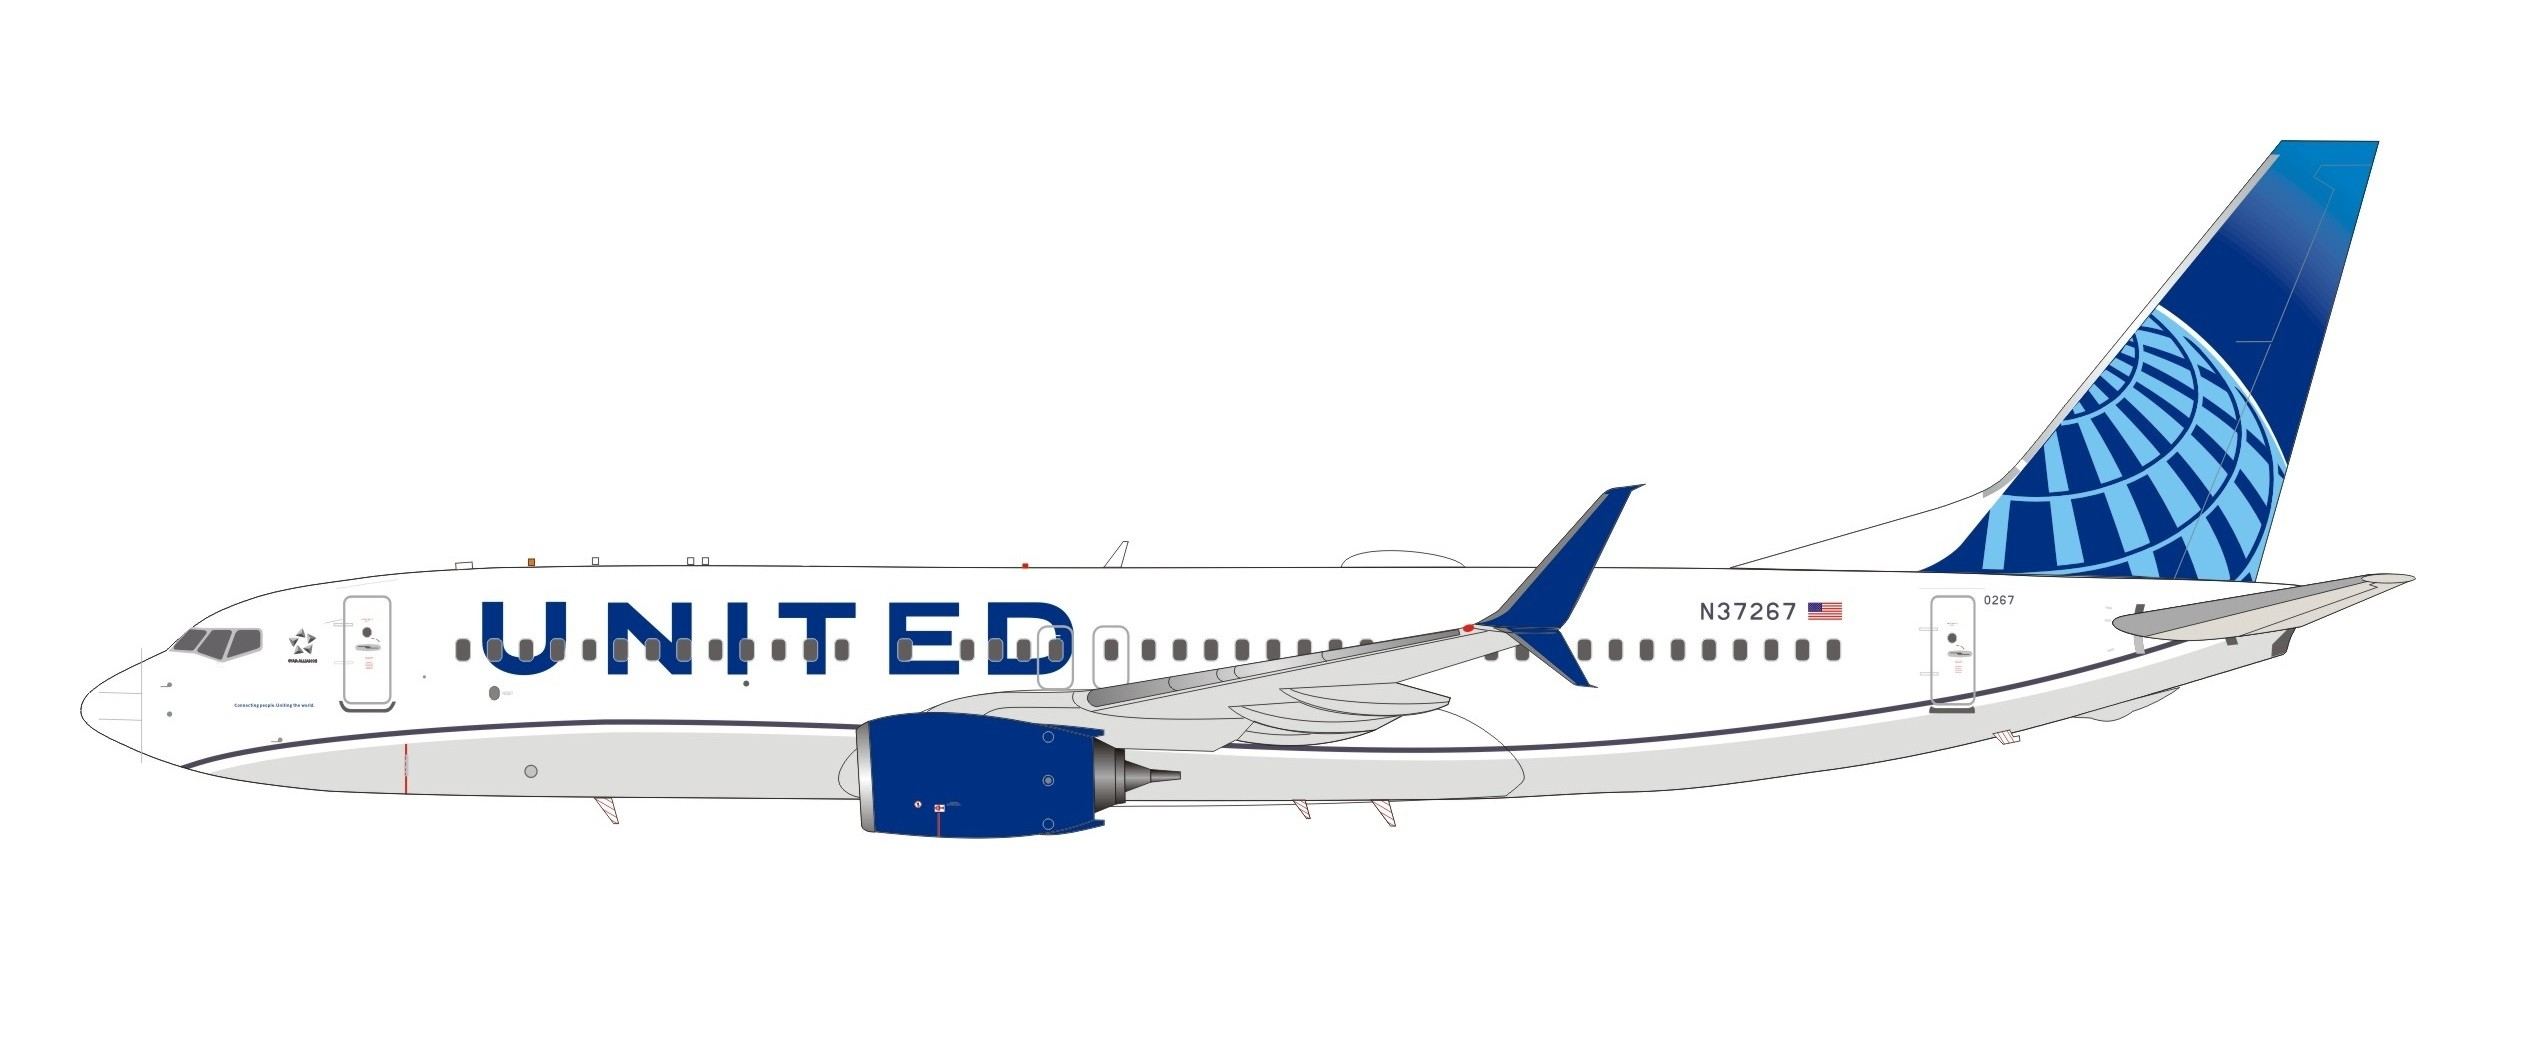 United New Color Livery Boeing 737-824 N37267 InFlight IF738UA0619 scale  1:200